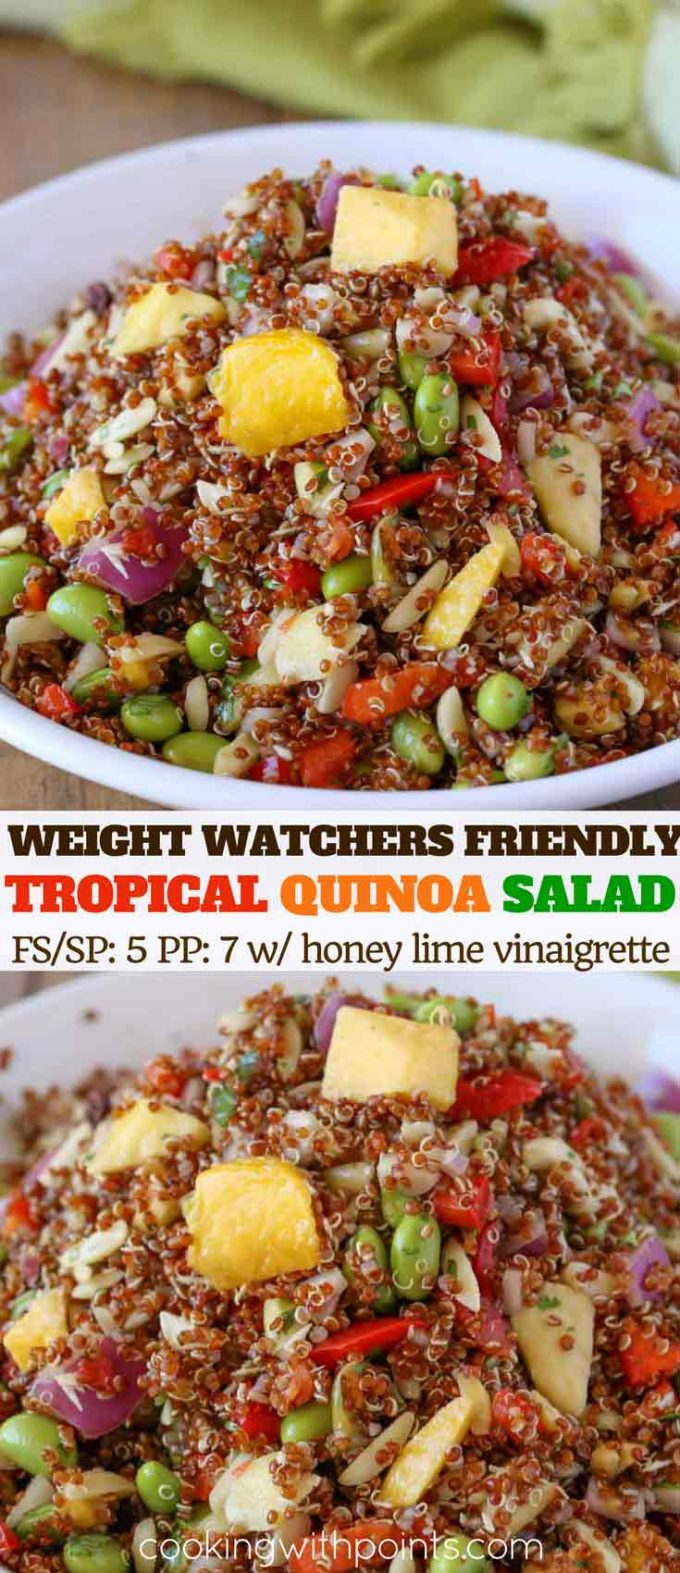 Quinoa Salad with Pineapple and Mango